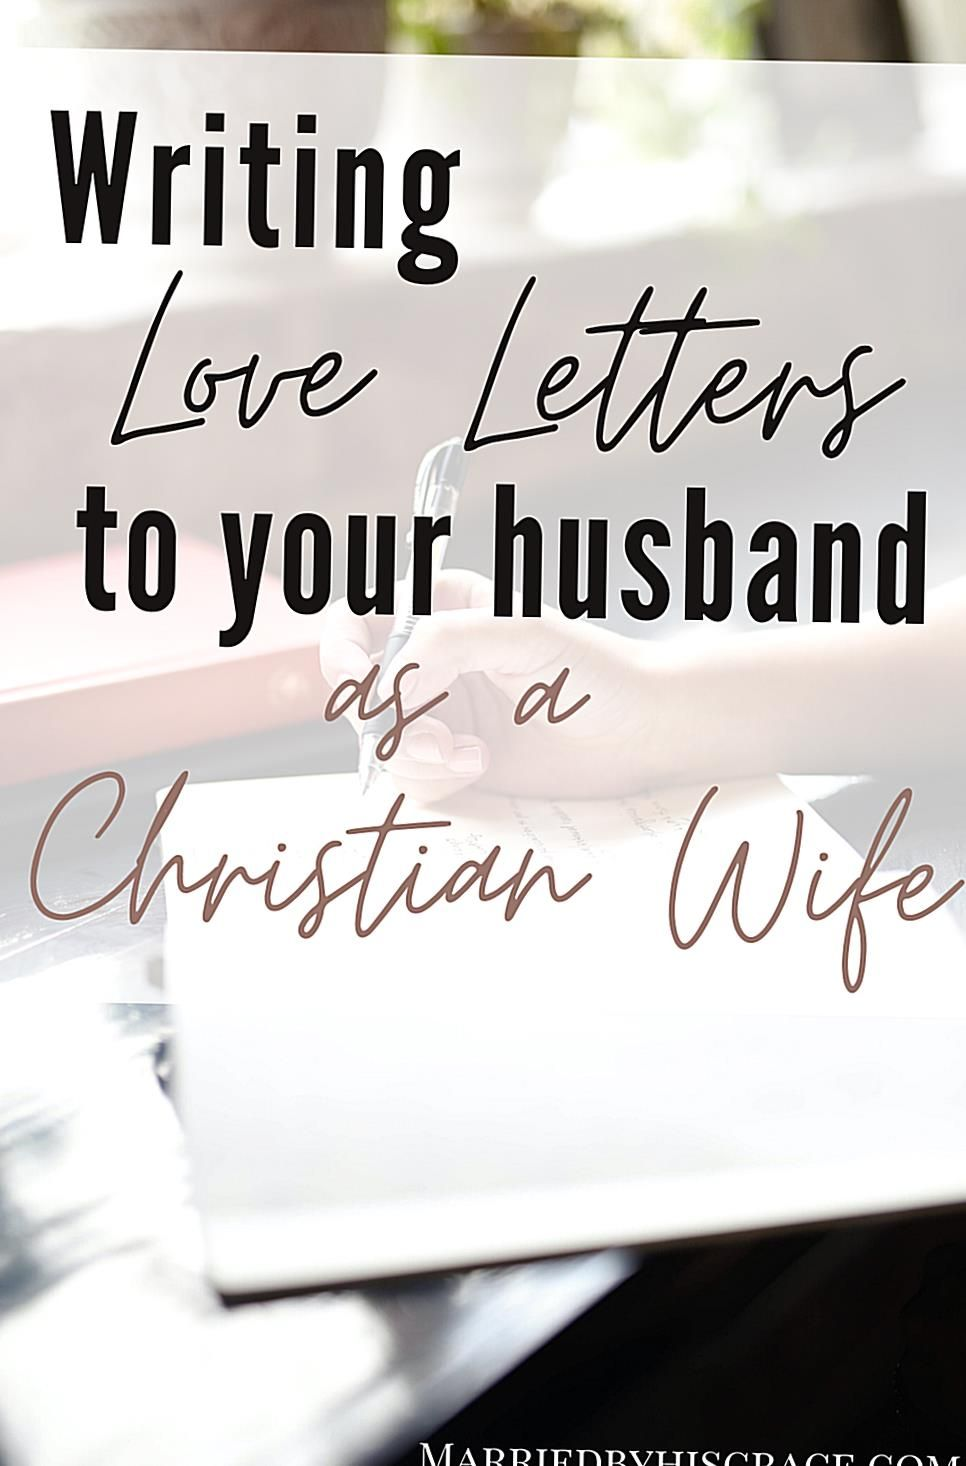 How to write love letters to your husband. Tips and ideas